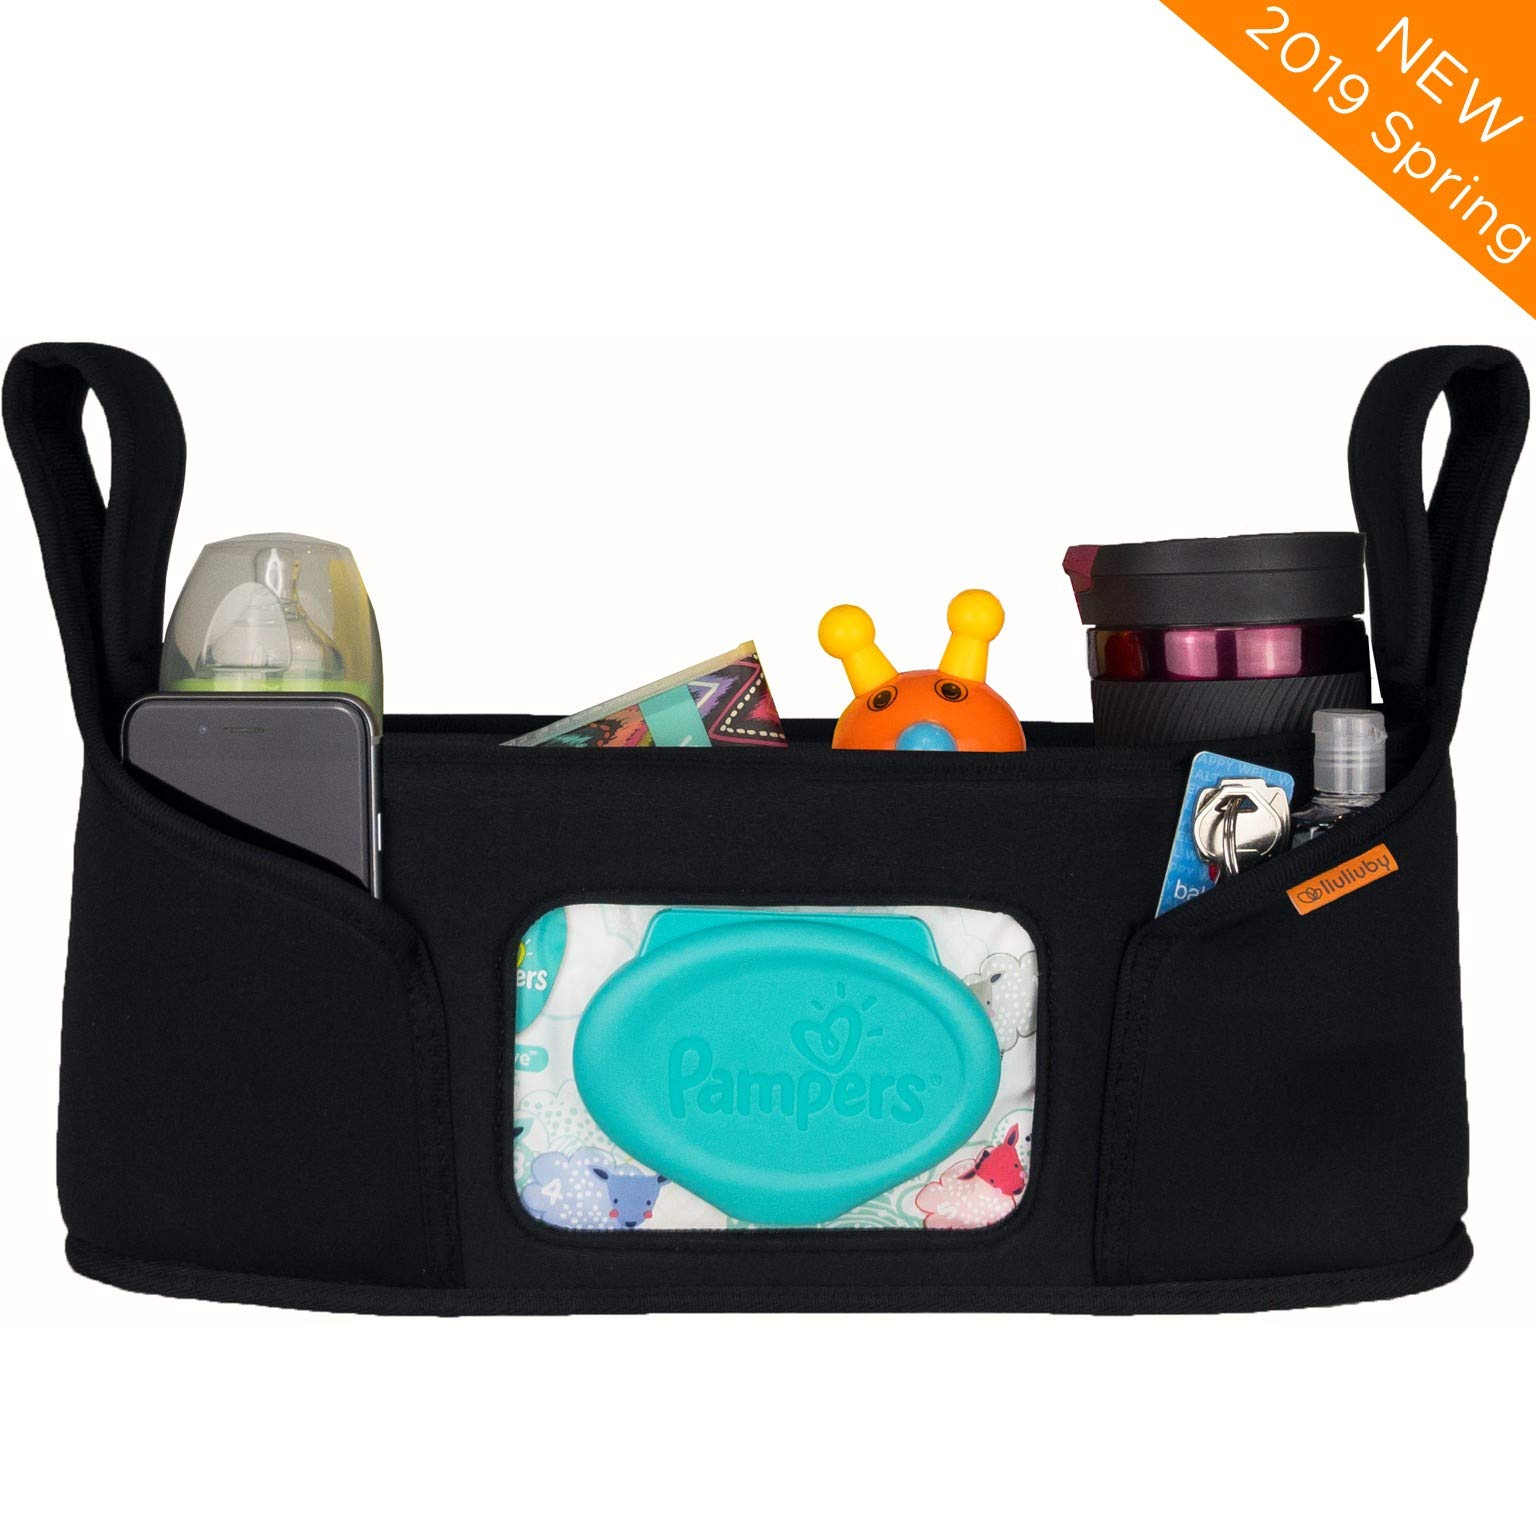 liuliuby Stroller Organizer - Large Storage Space with Easy Access Wipe Pocket and Customizable Compartments - Universal Fit - 2019 New Launch by liuliuby